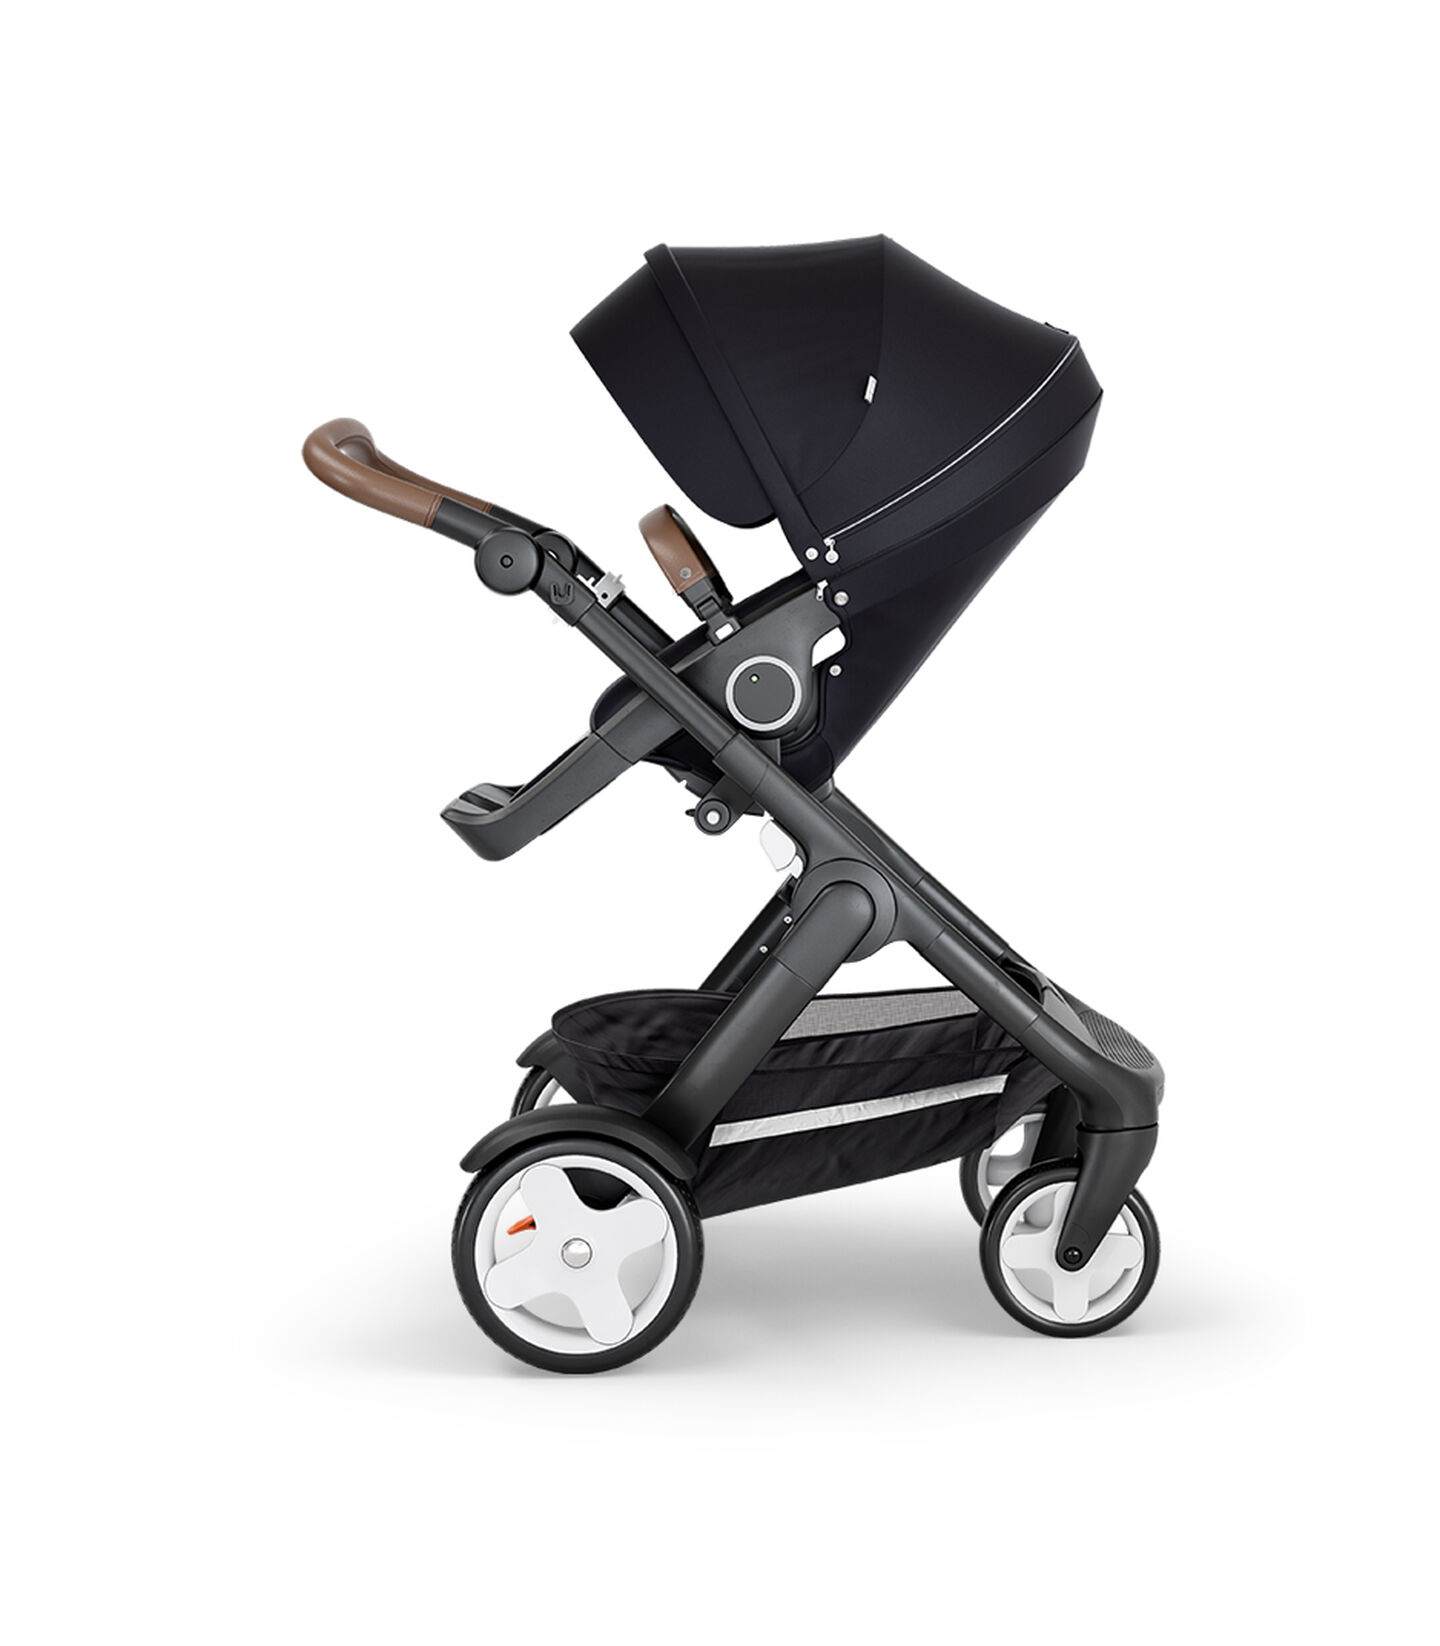 Stokke® Trailz™ with Black Chassis, Brown Leatherette and Classic Wheels. Stokke® Stroller Seat, Black. view 2